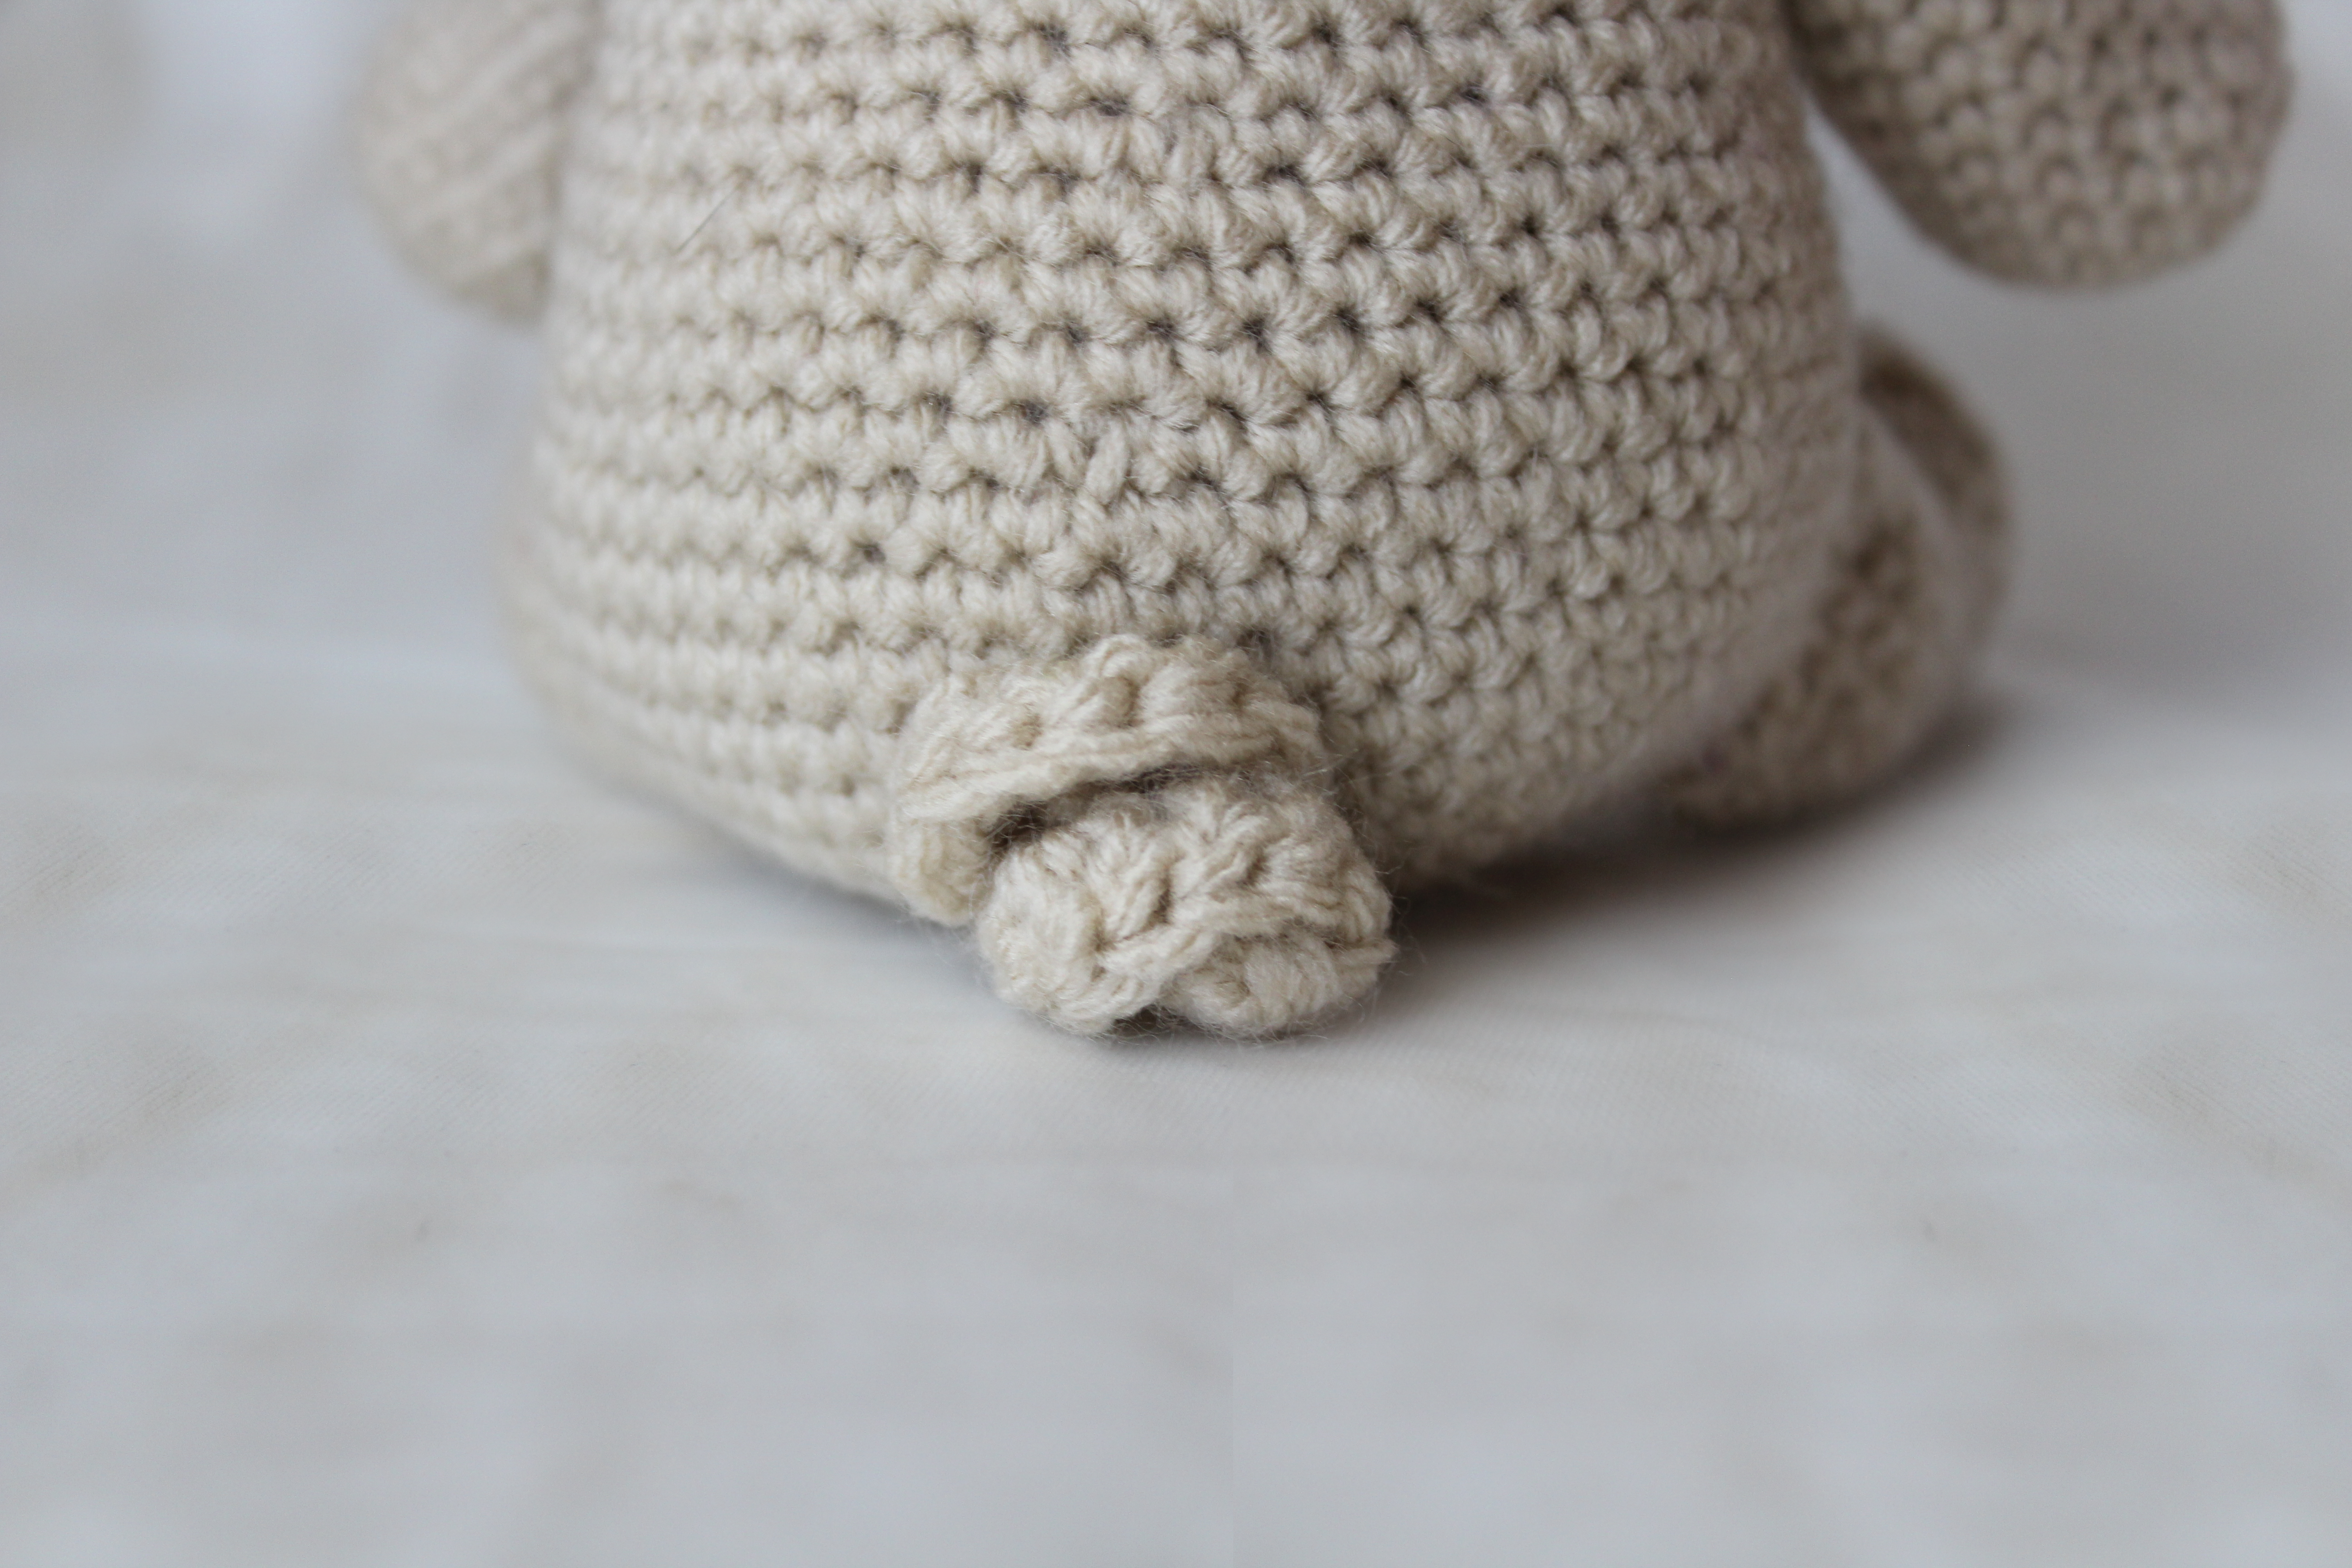 Baby Pug Dog amigurumi pattern - Amigurumi Today | 3456x5184